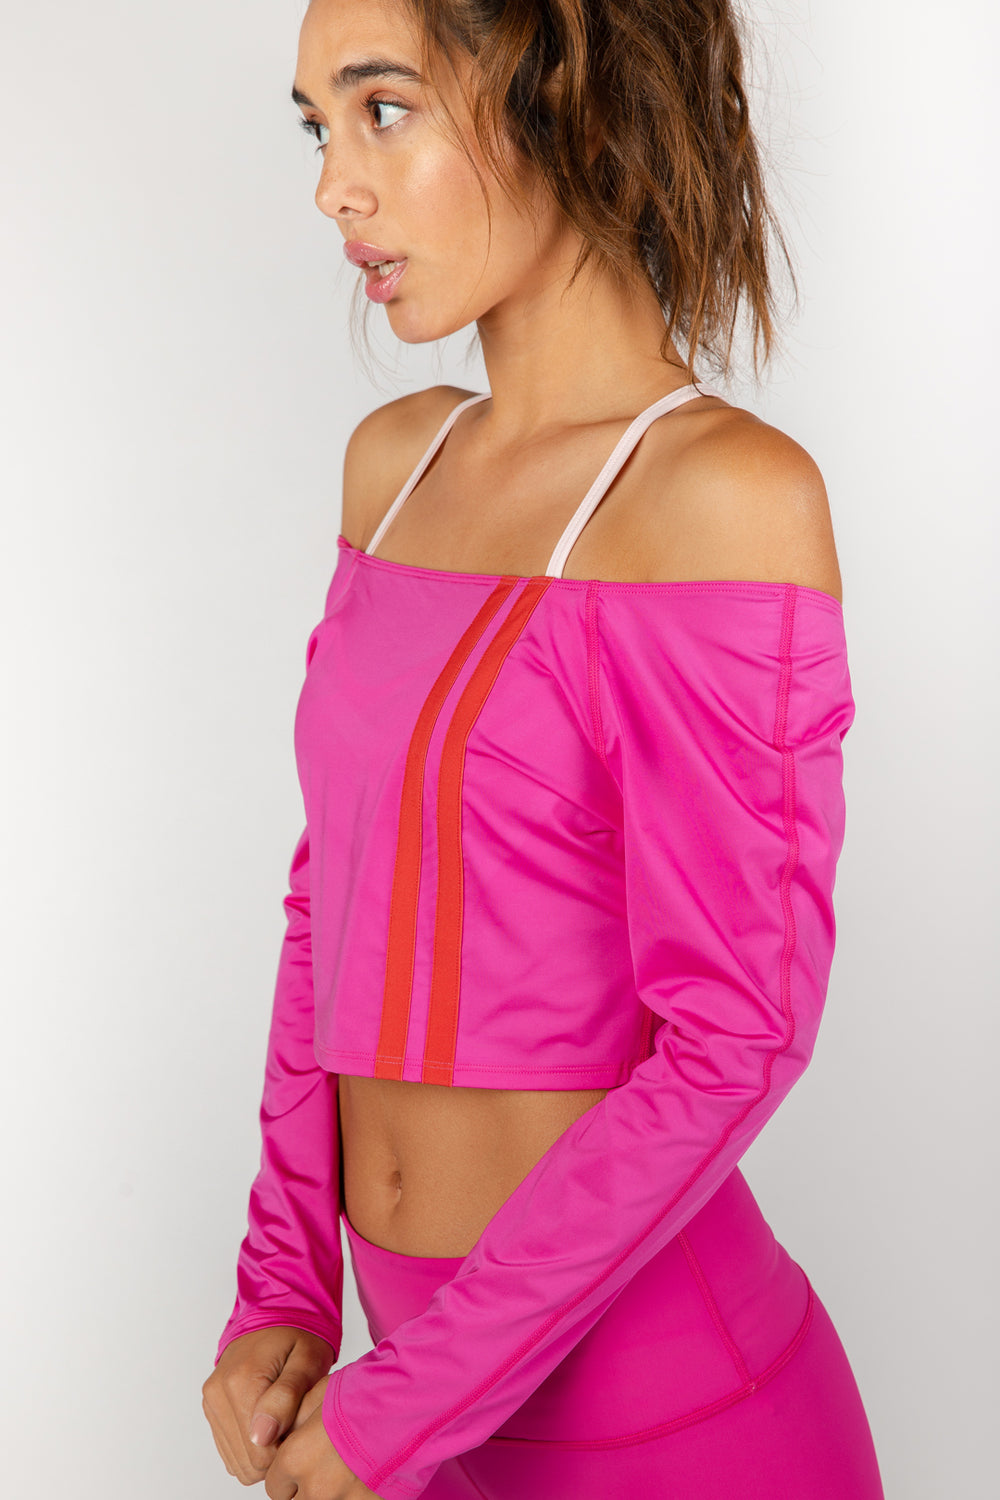 Game Changer Pink Cropped Tee